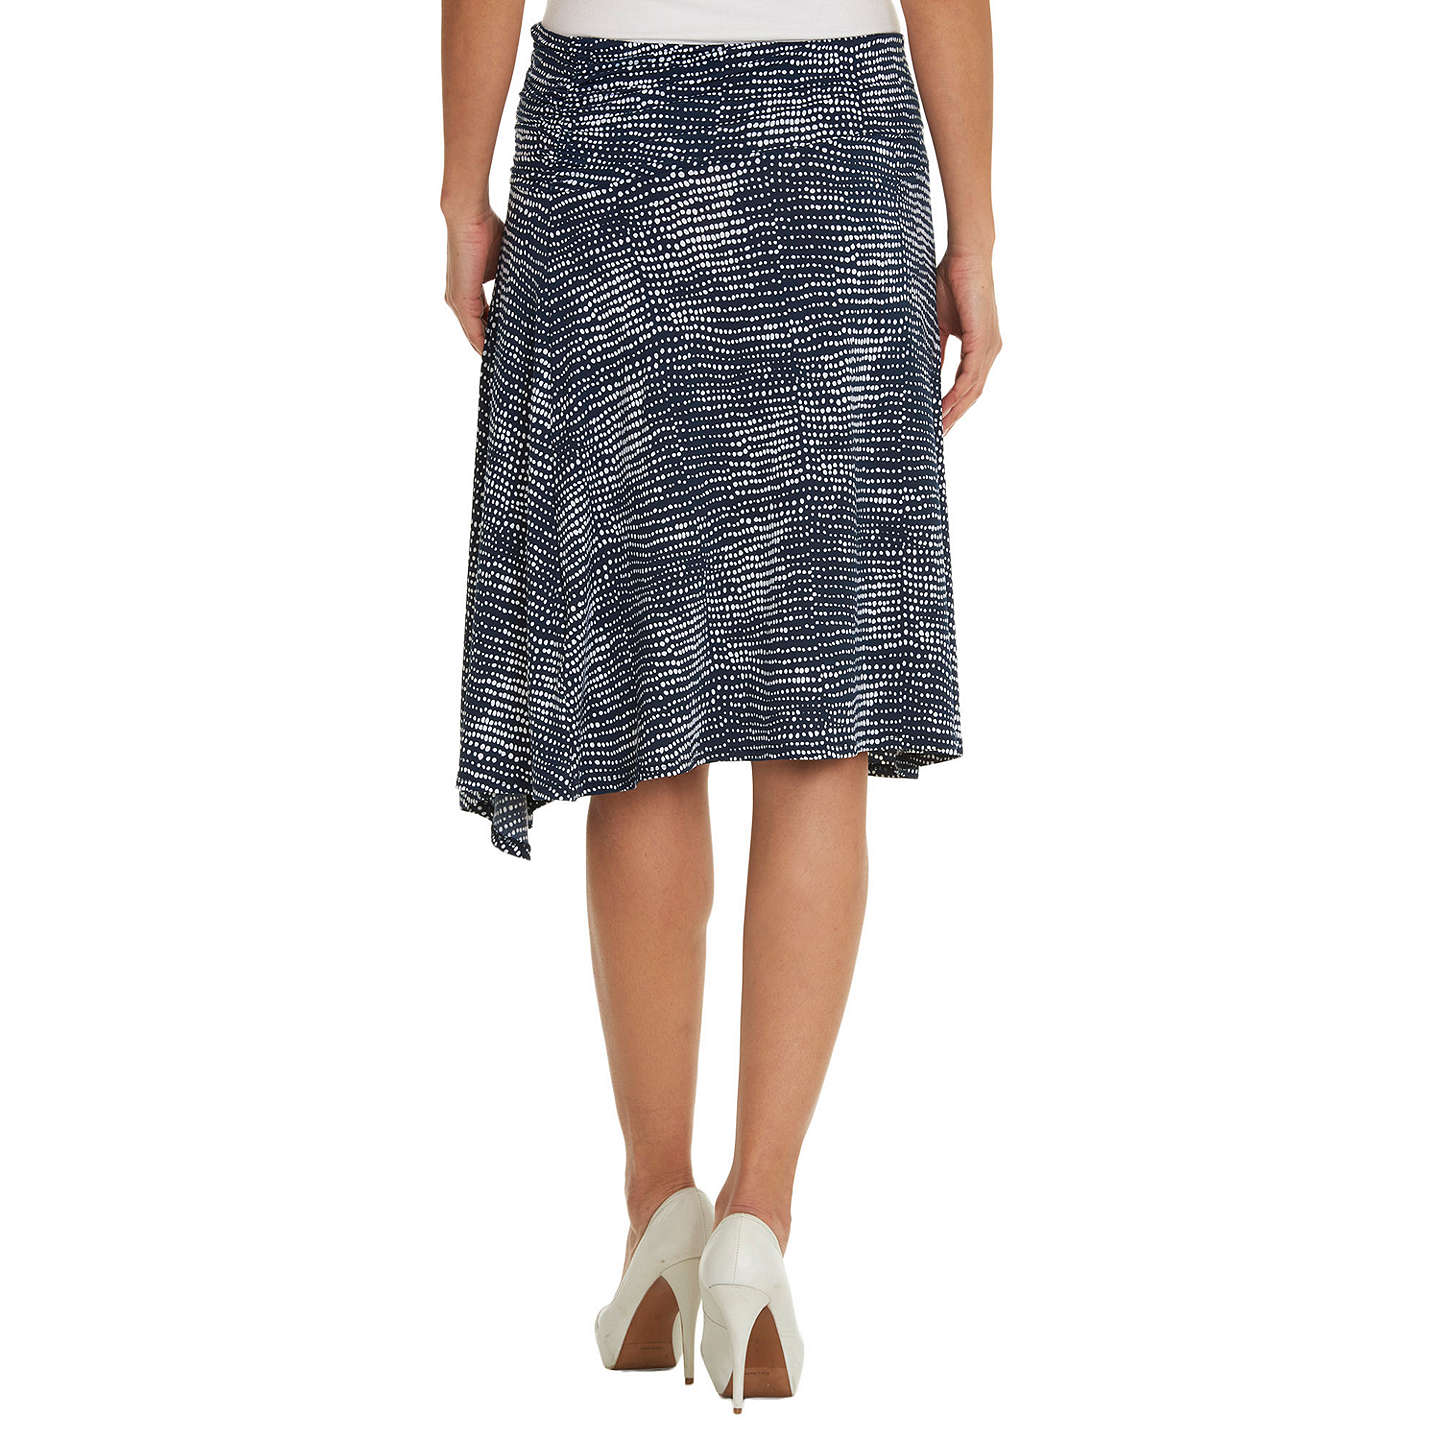 BuyBetty Barclay Printed Skirt, Dark Blue/White, 8 Online at johnlewis.com